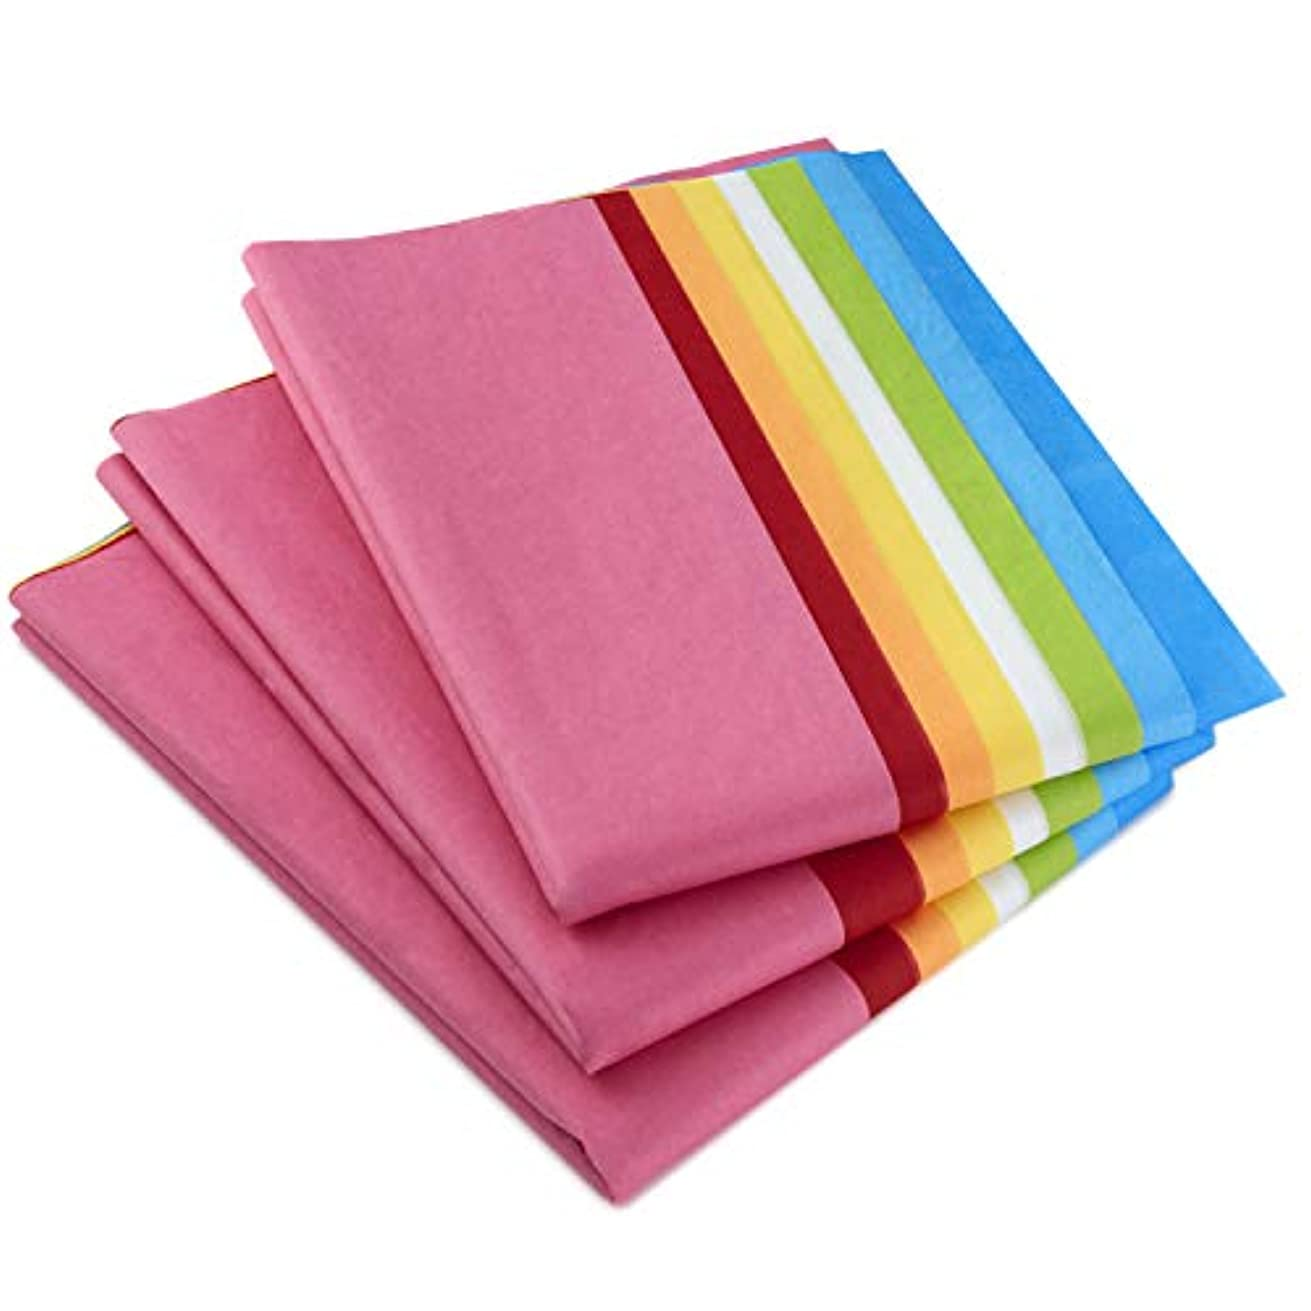 Hallmark Tissue Paper, 120 Sheets (Classic Rainbow, 8 colors)